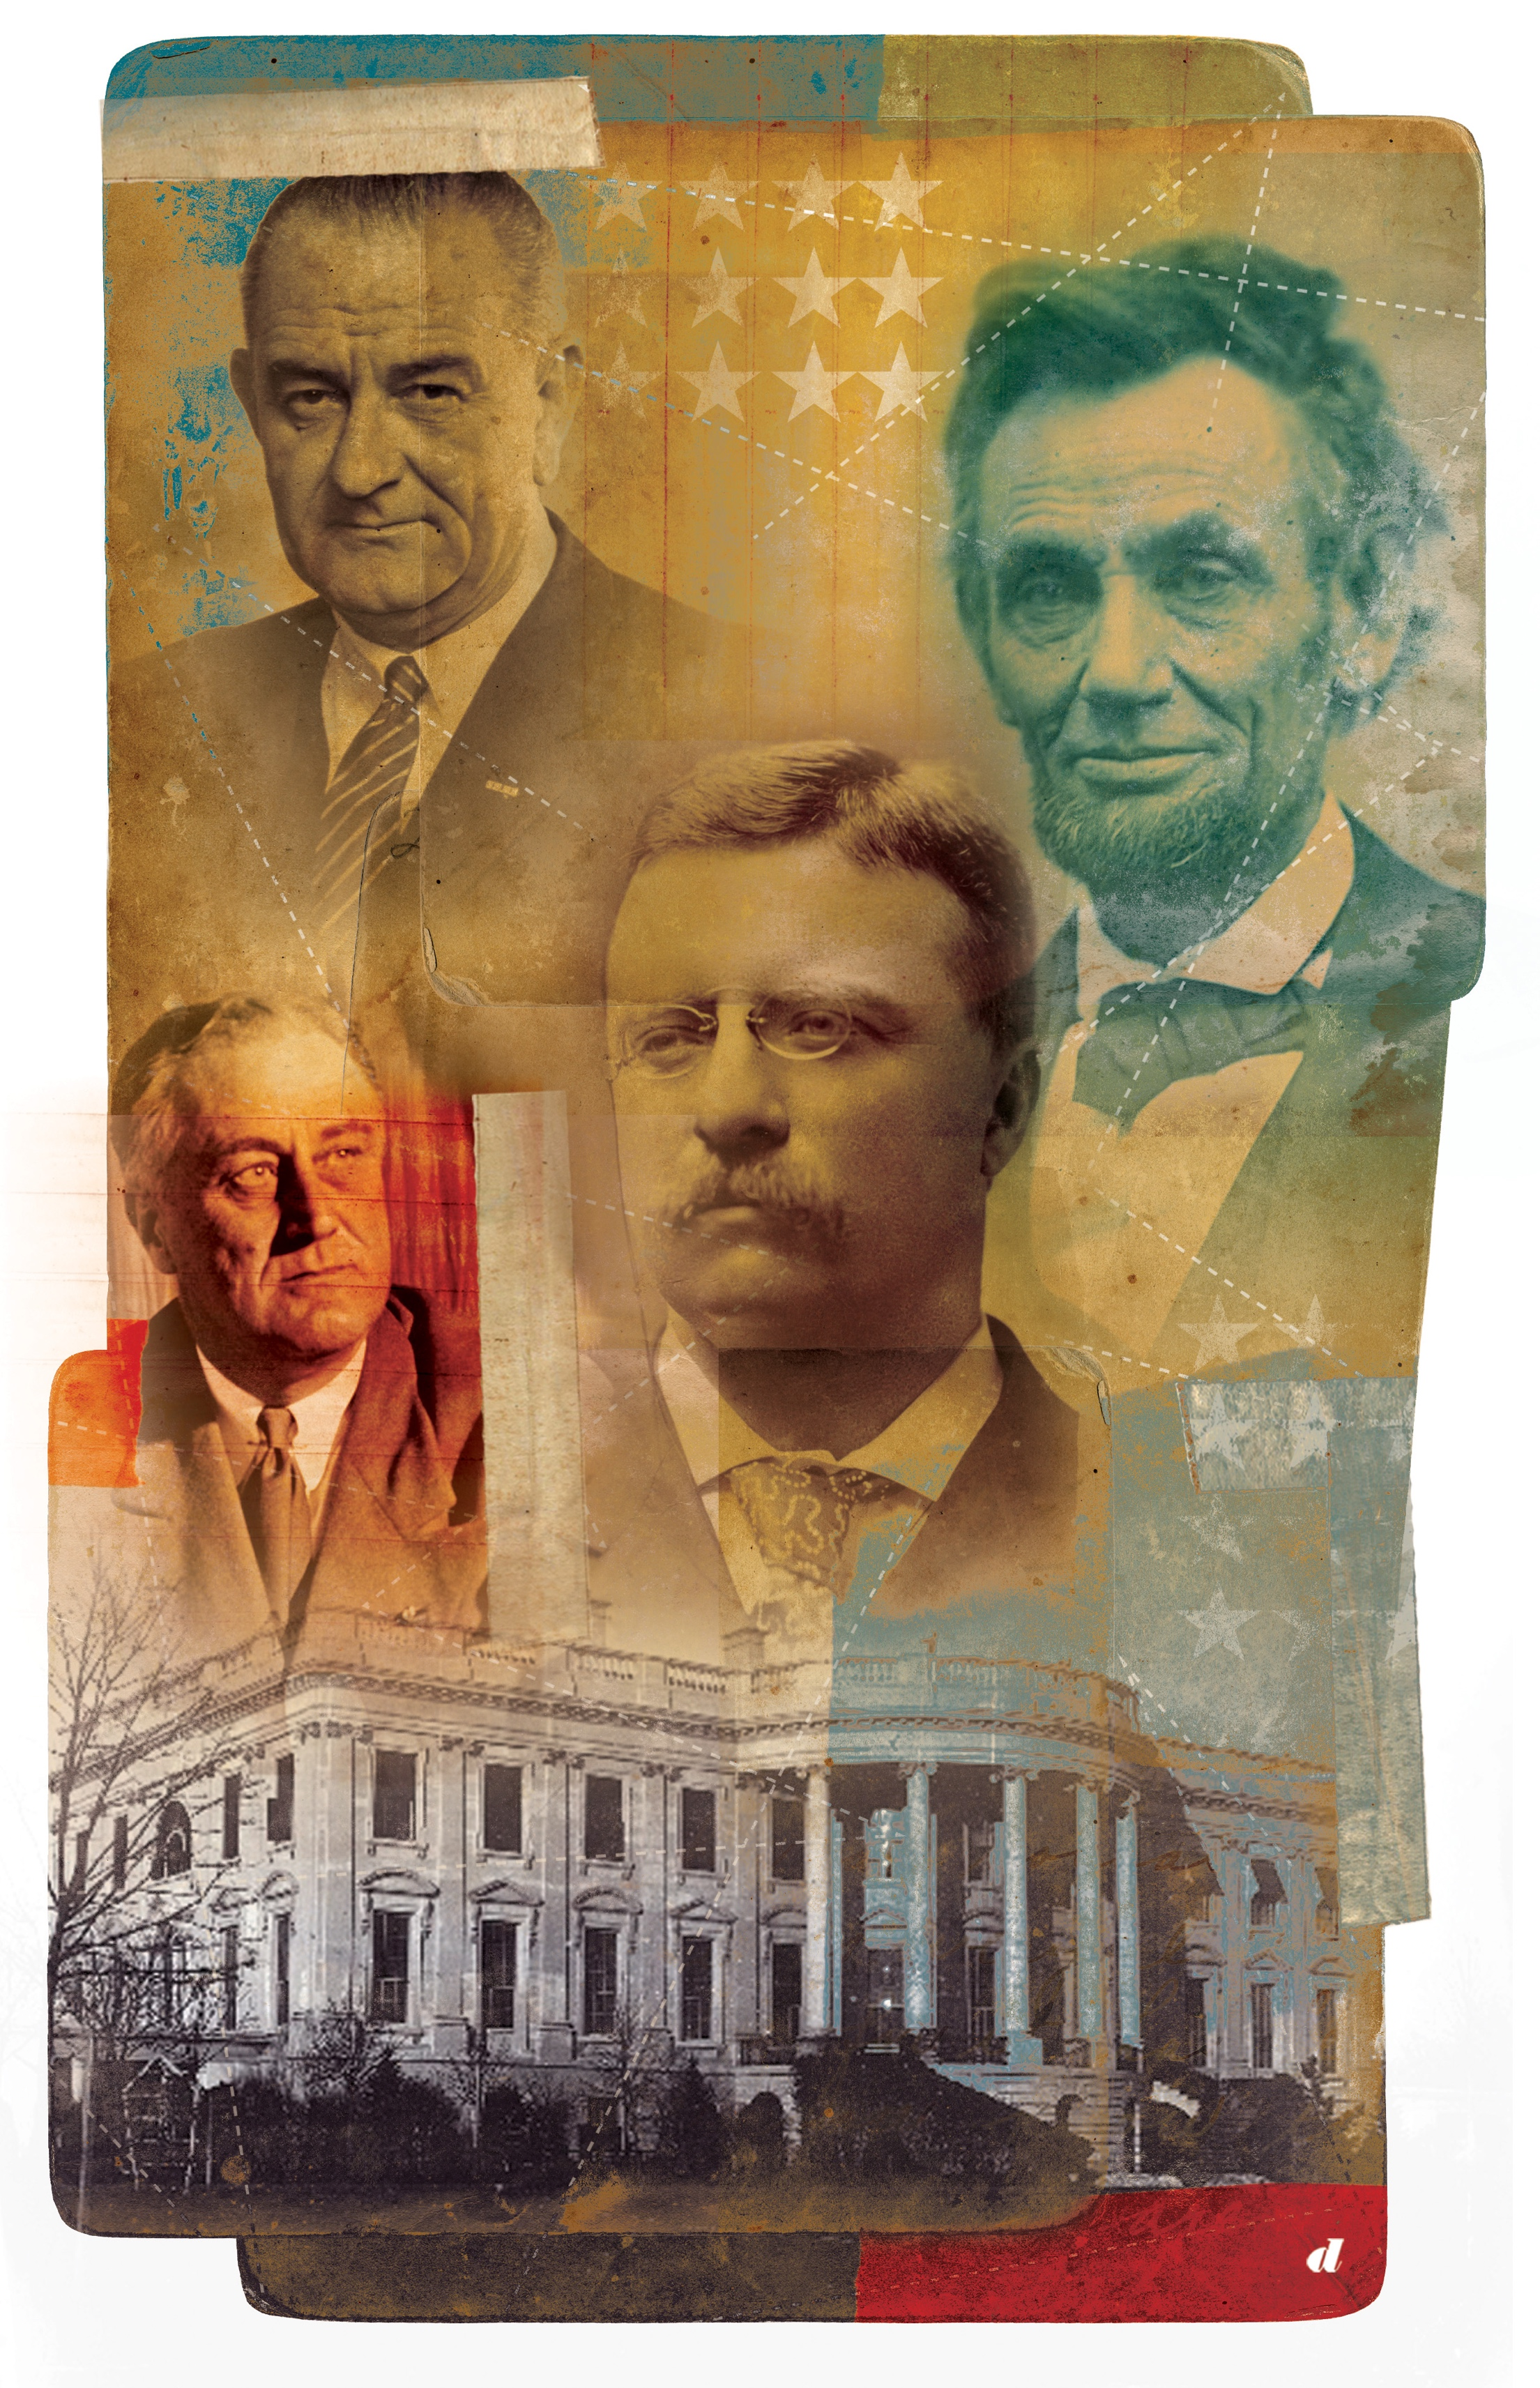 Four US presidents who faced nation-threatening crises displayed crisis management traits that serve as examples for contemporary crisis preparation and response.